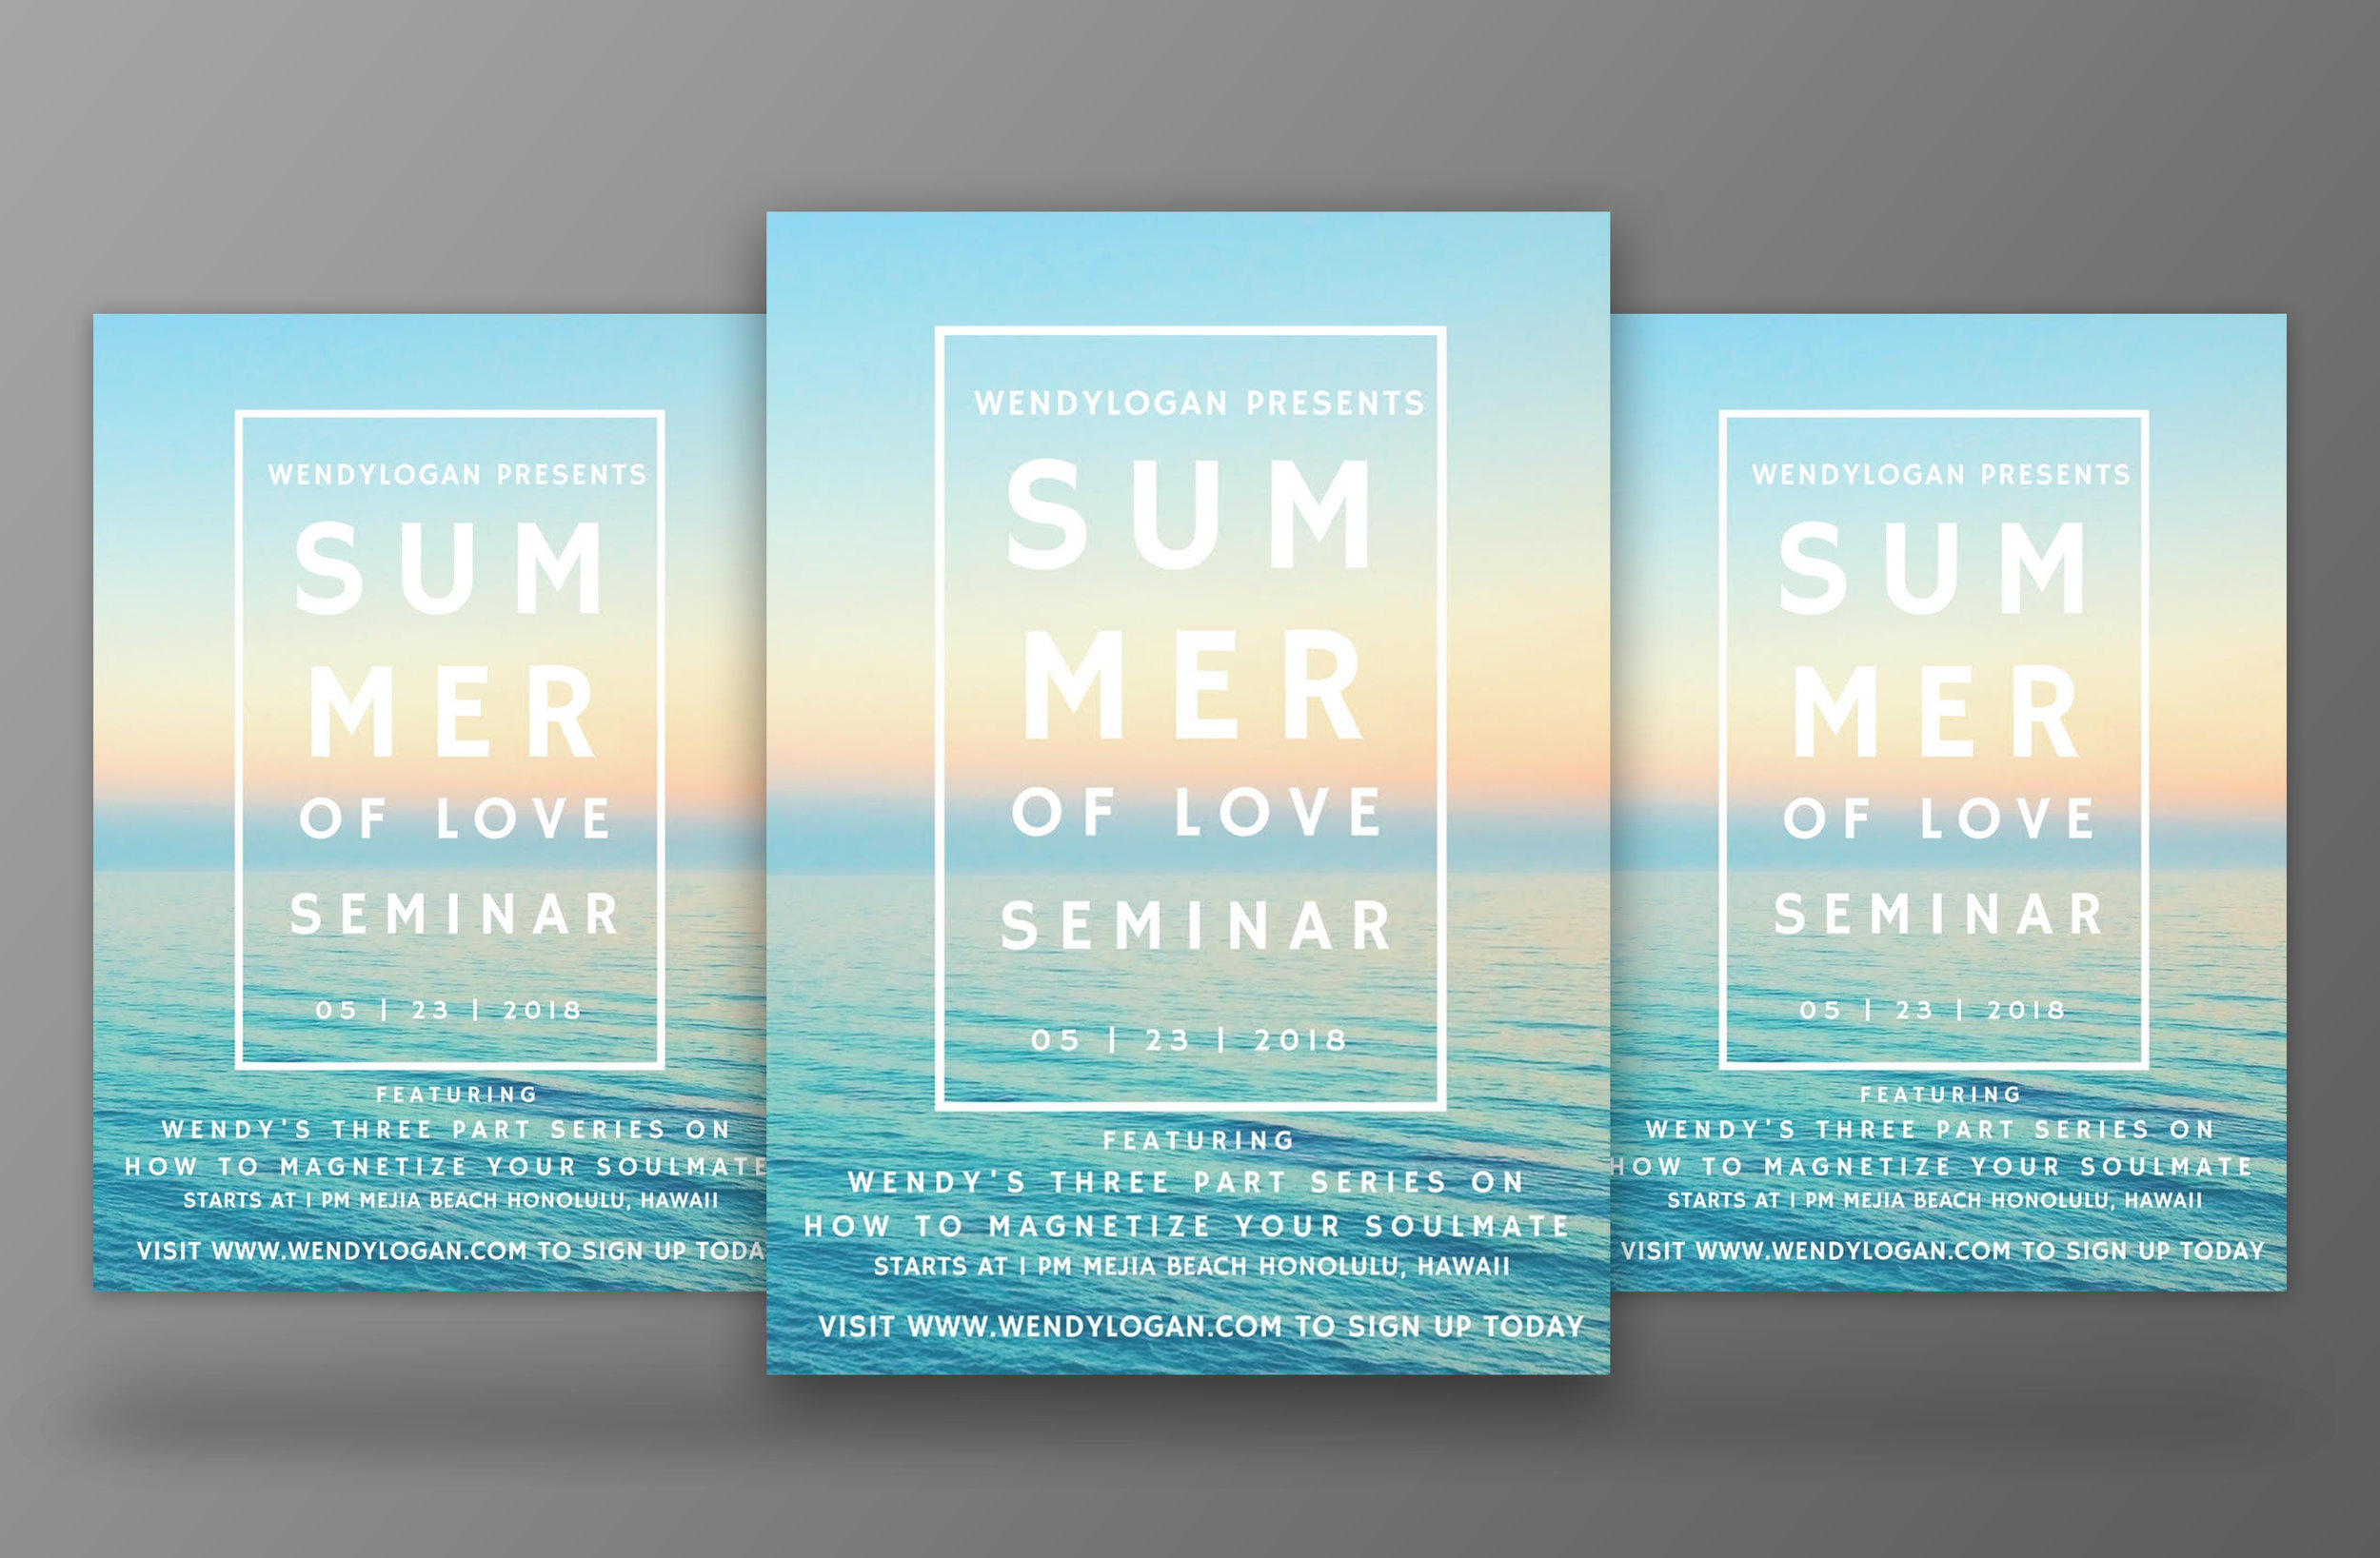 Summer of Love Seminar Flyers.jpg